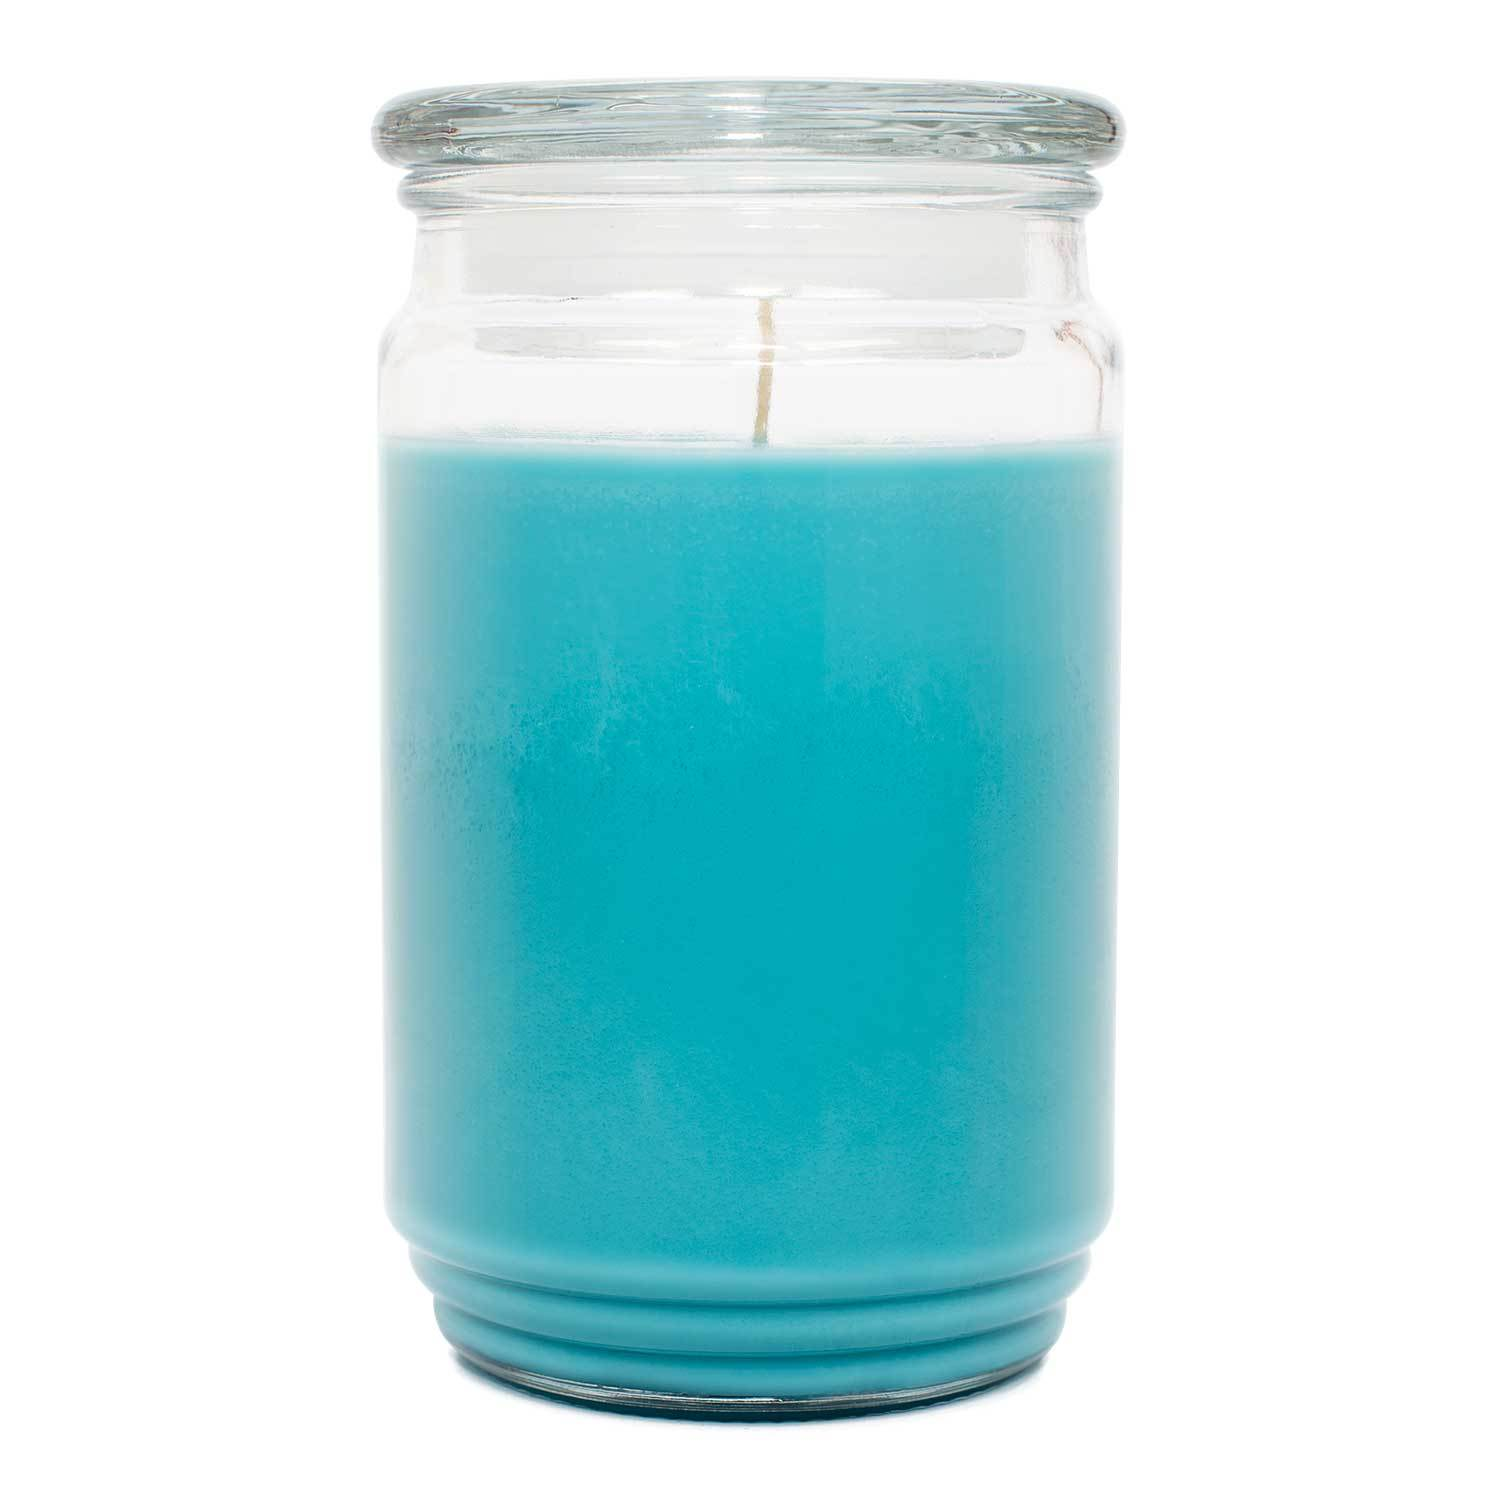 Natural Soy South Seas Scented Soy Candle - Candlemart.com